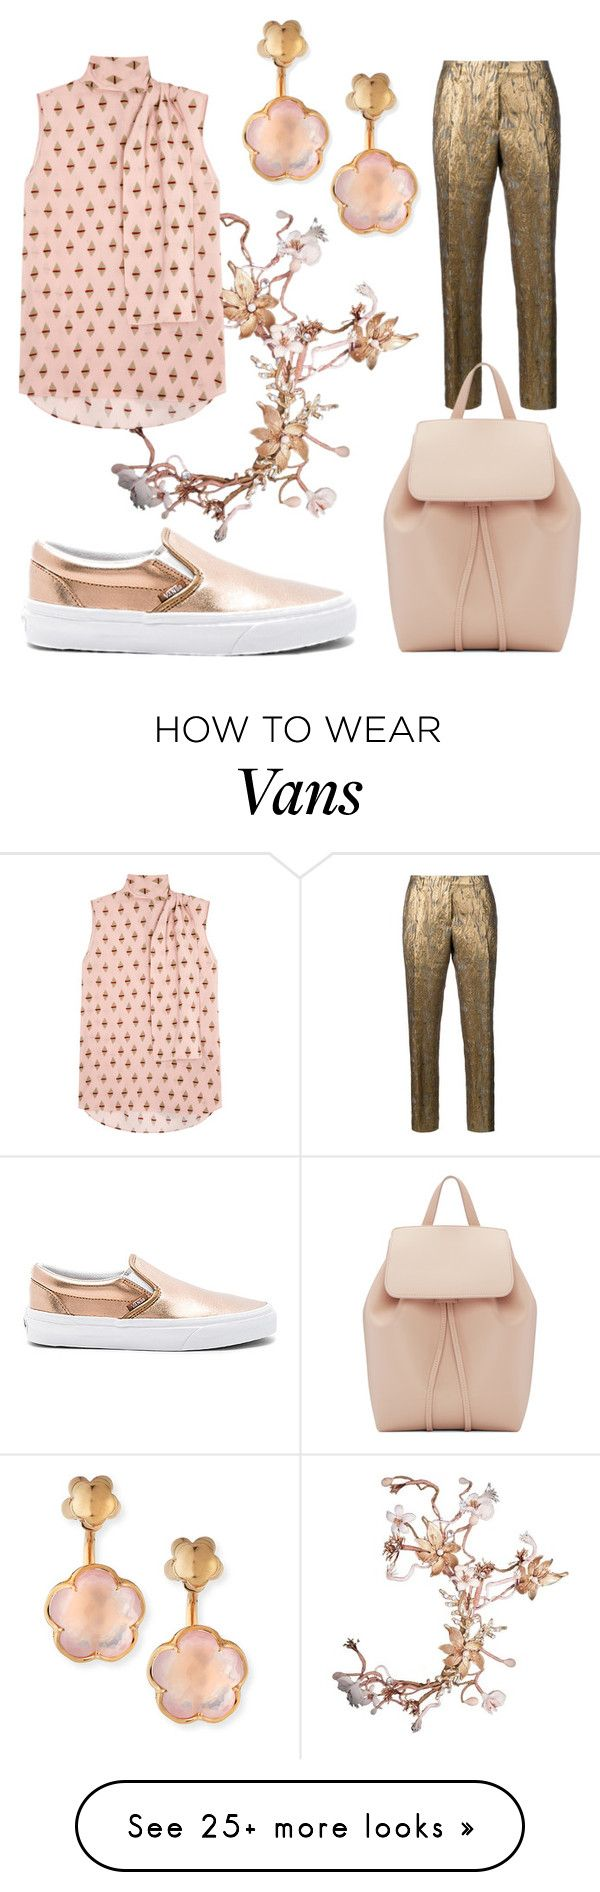 """""""gold 'n pink"""" by glasspaperscizzors on Polyvore featuring Vans, Dries Van Noten, Mansur Gavriel, Valentino and Pasquale Bruni"""